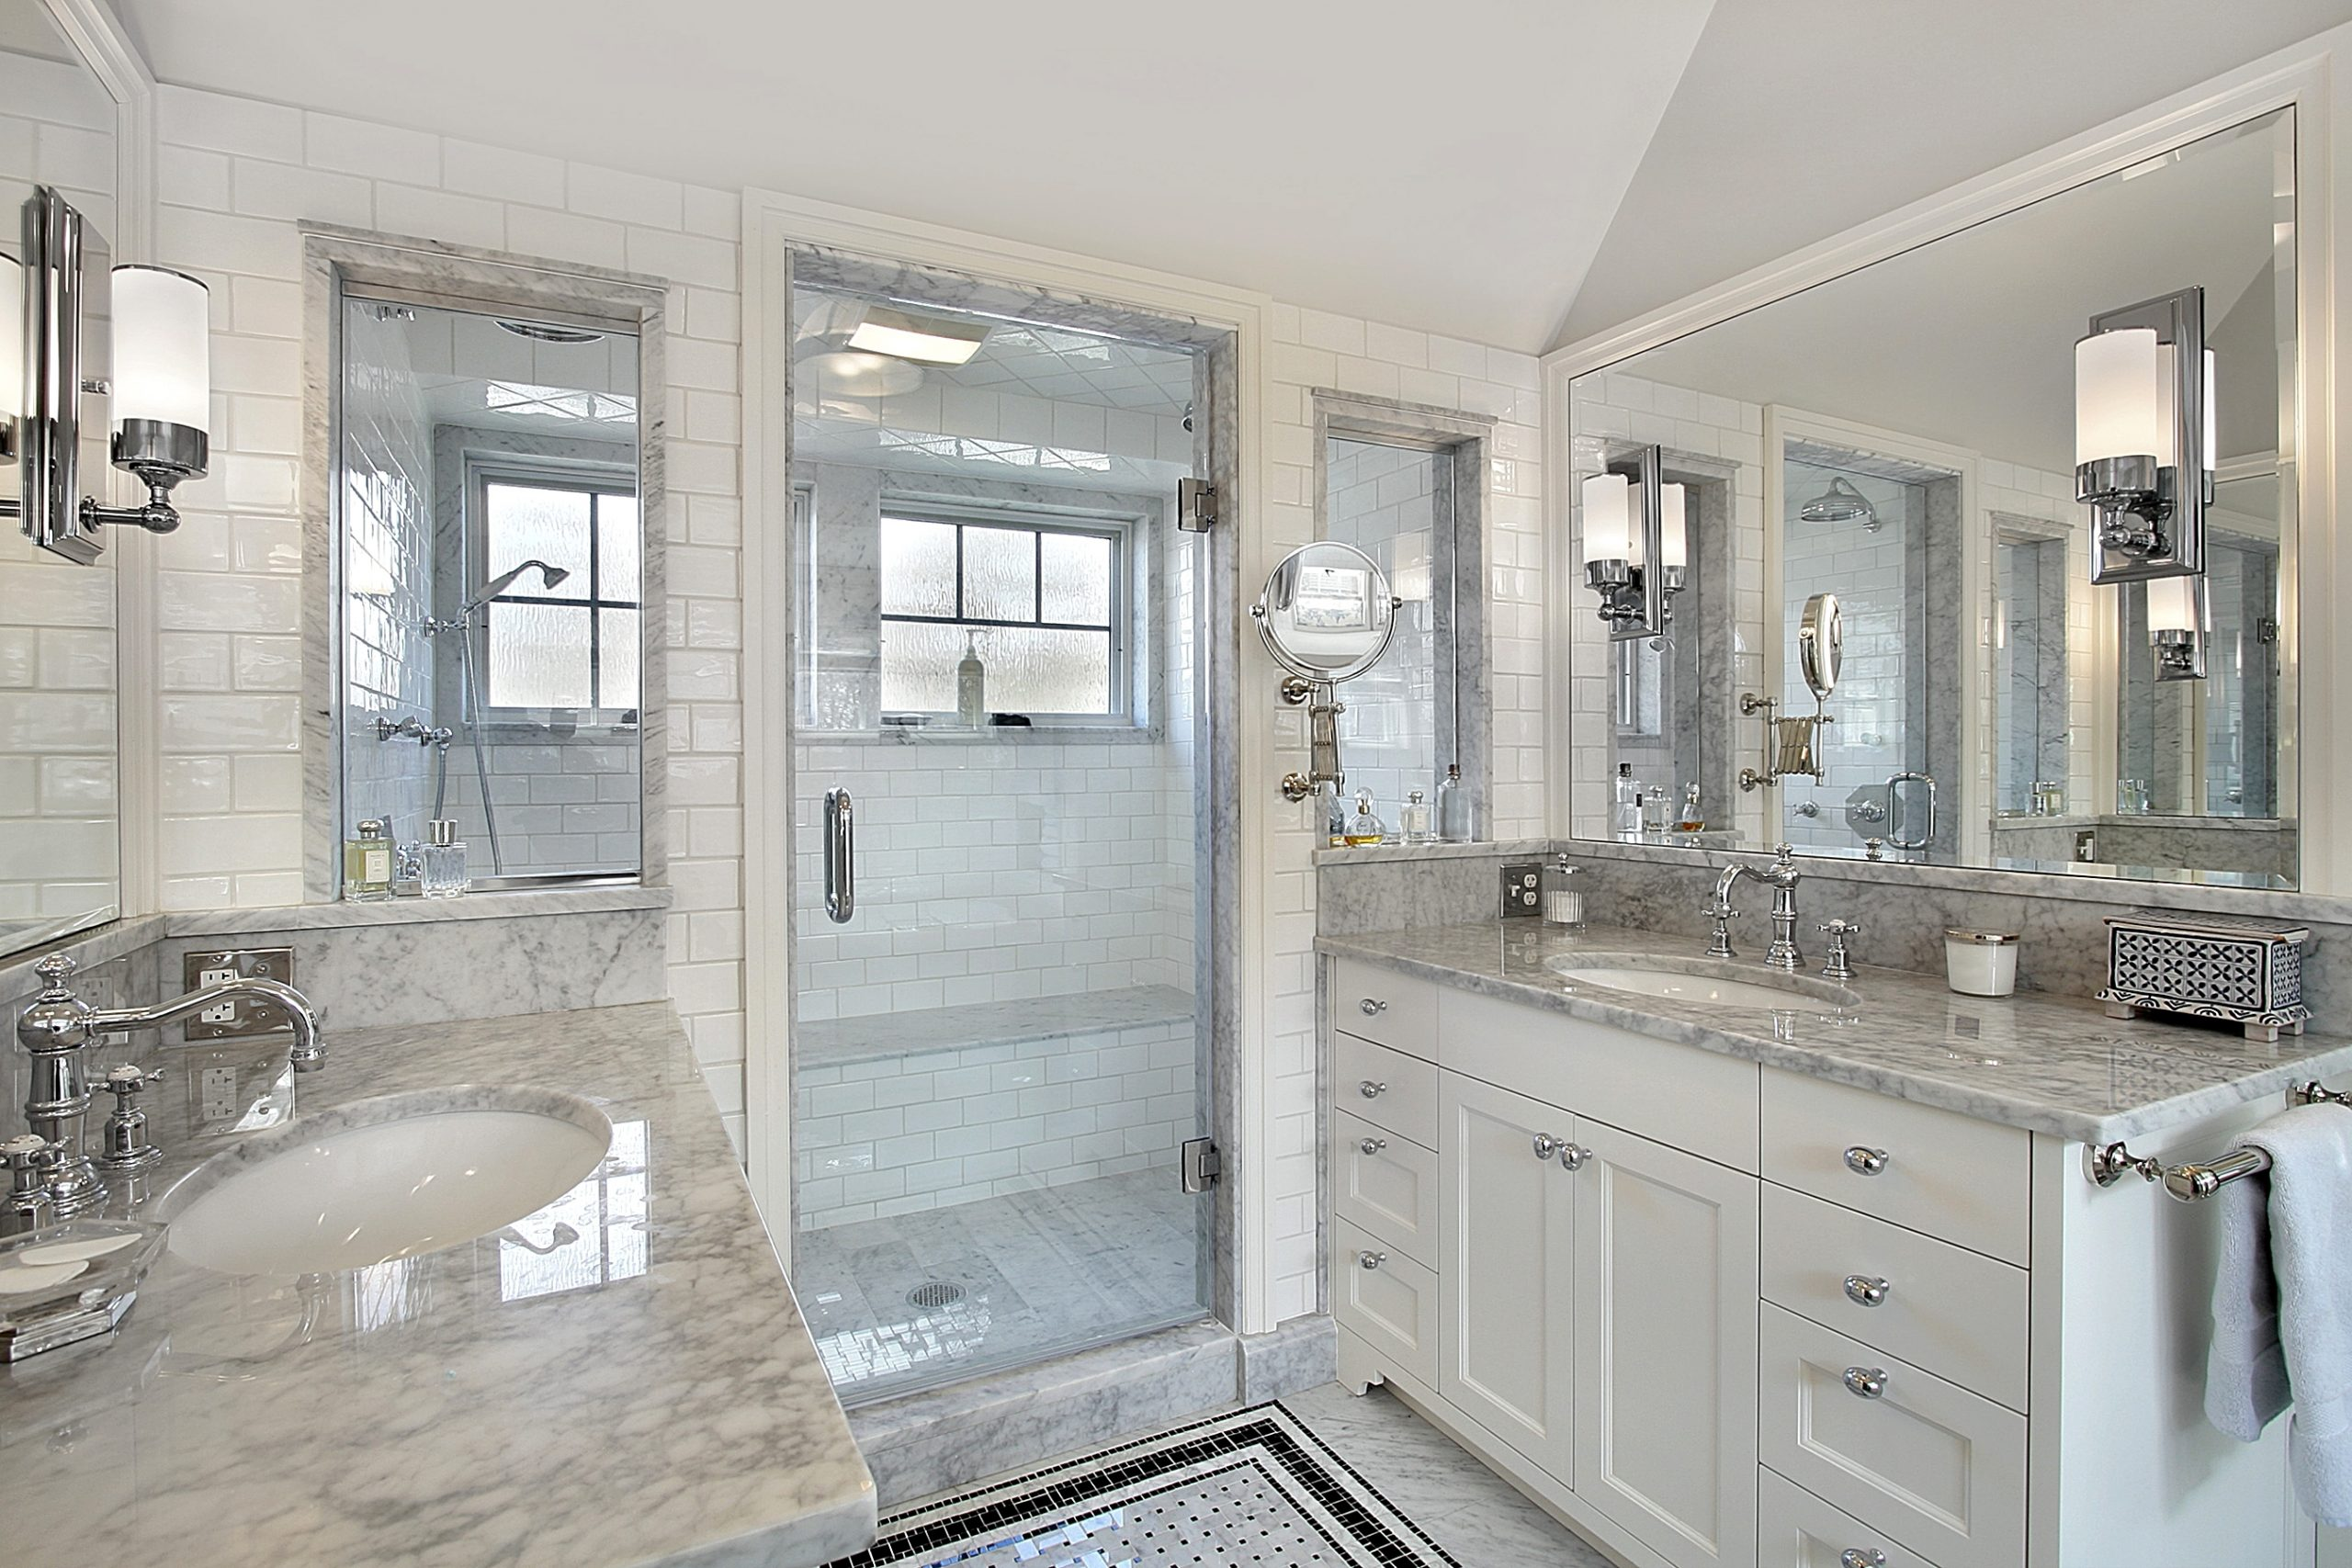 How Much Does A New Bathroom Increase Home Value | Rwc | Est 30+ Raised Ranch Bathroom Remodel Inspirations